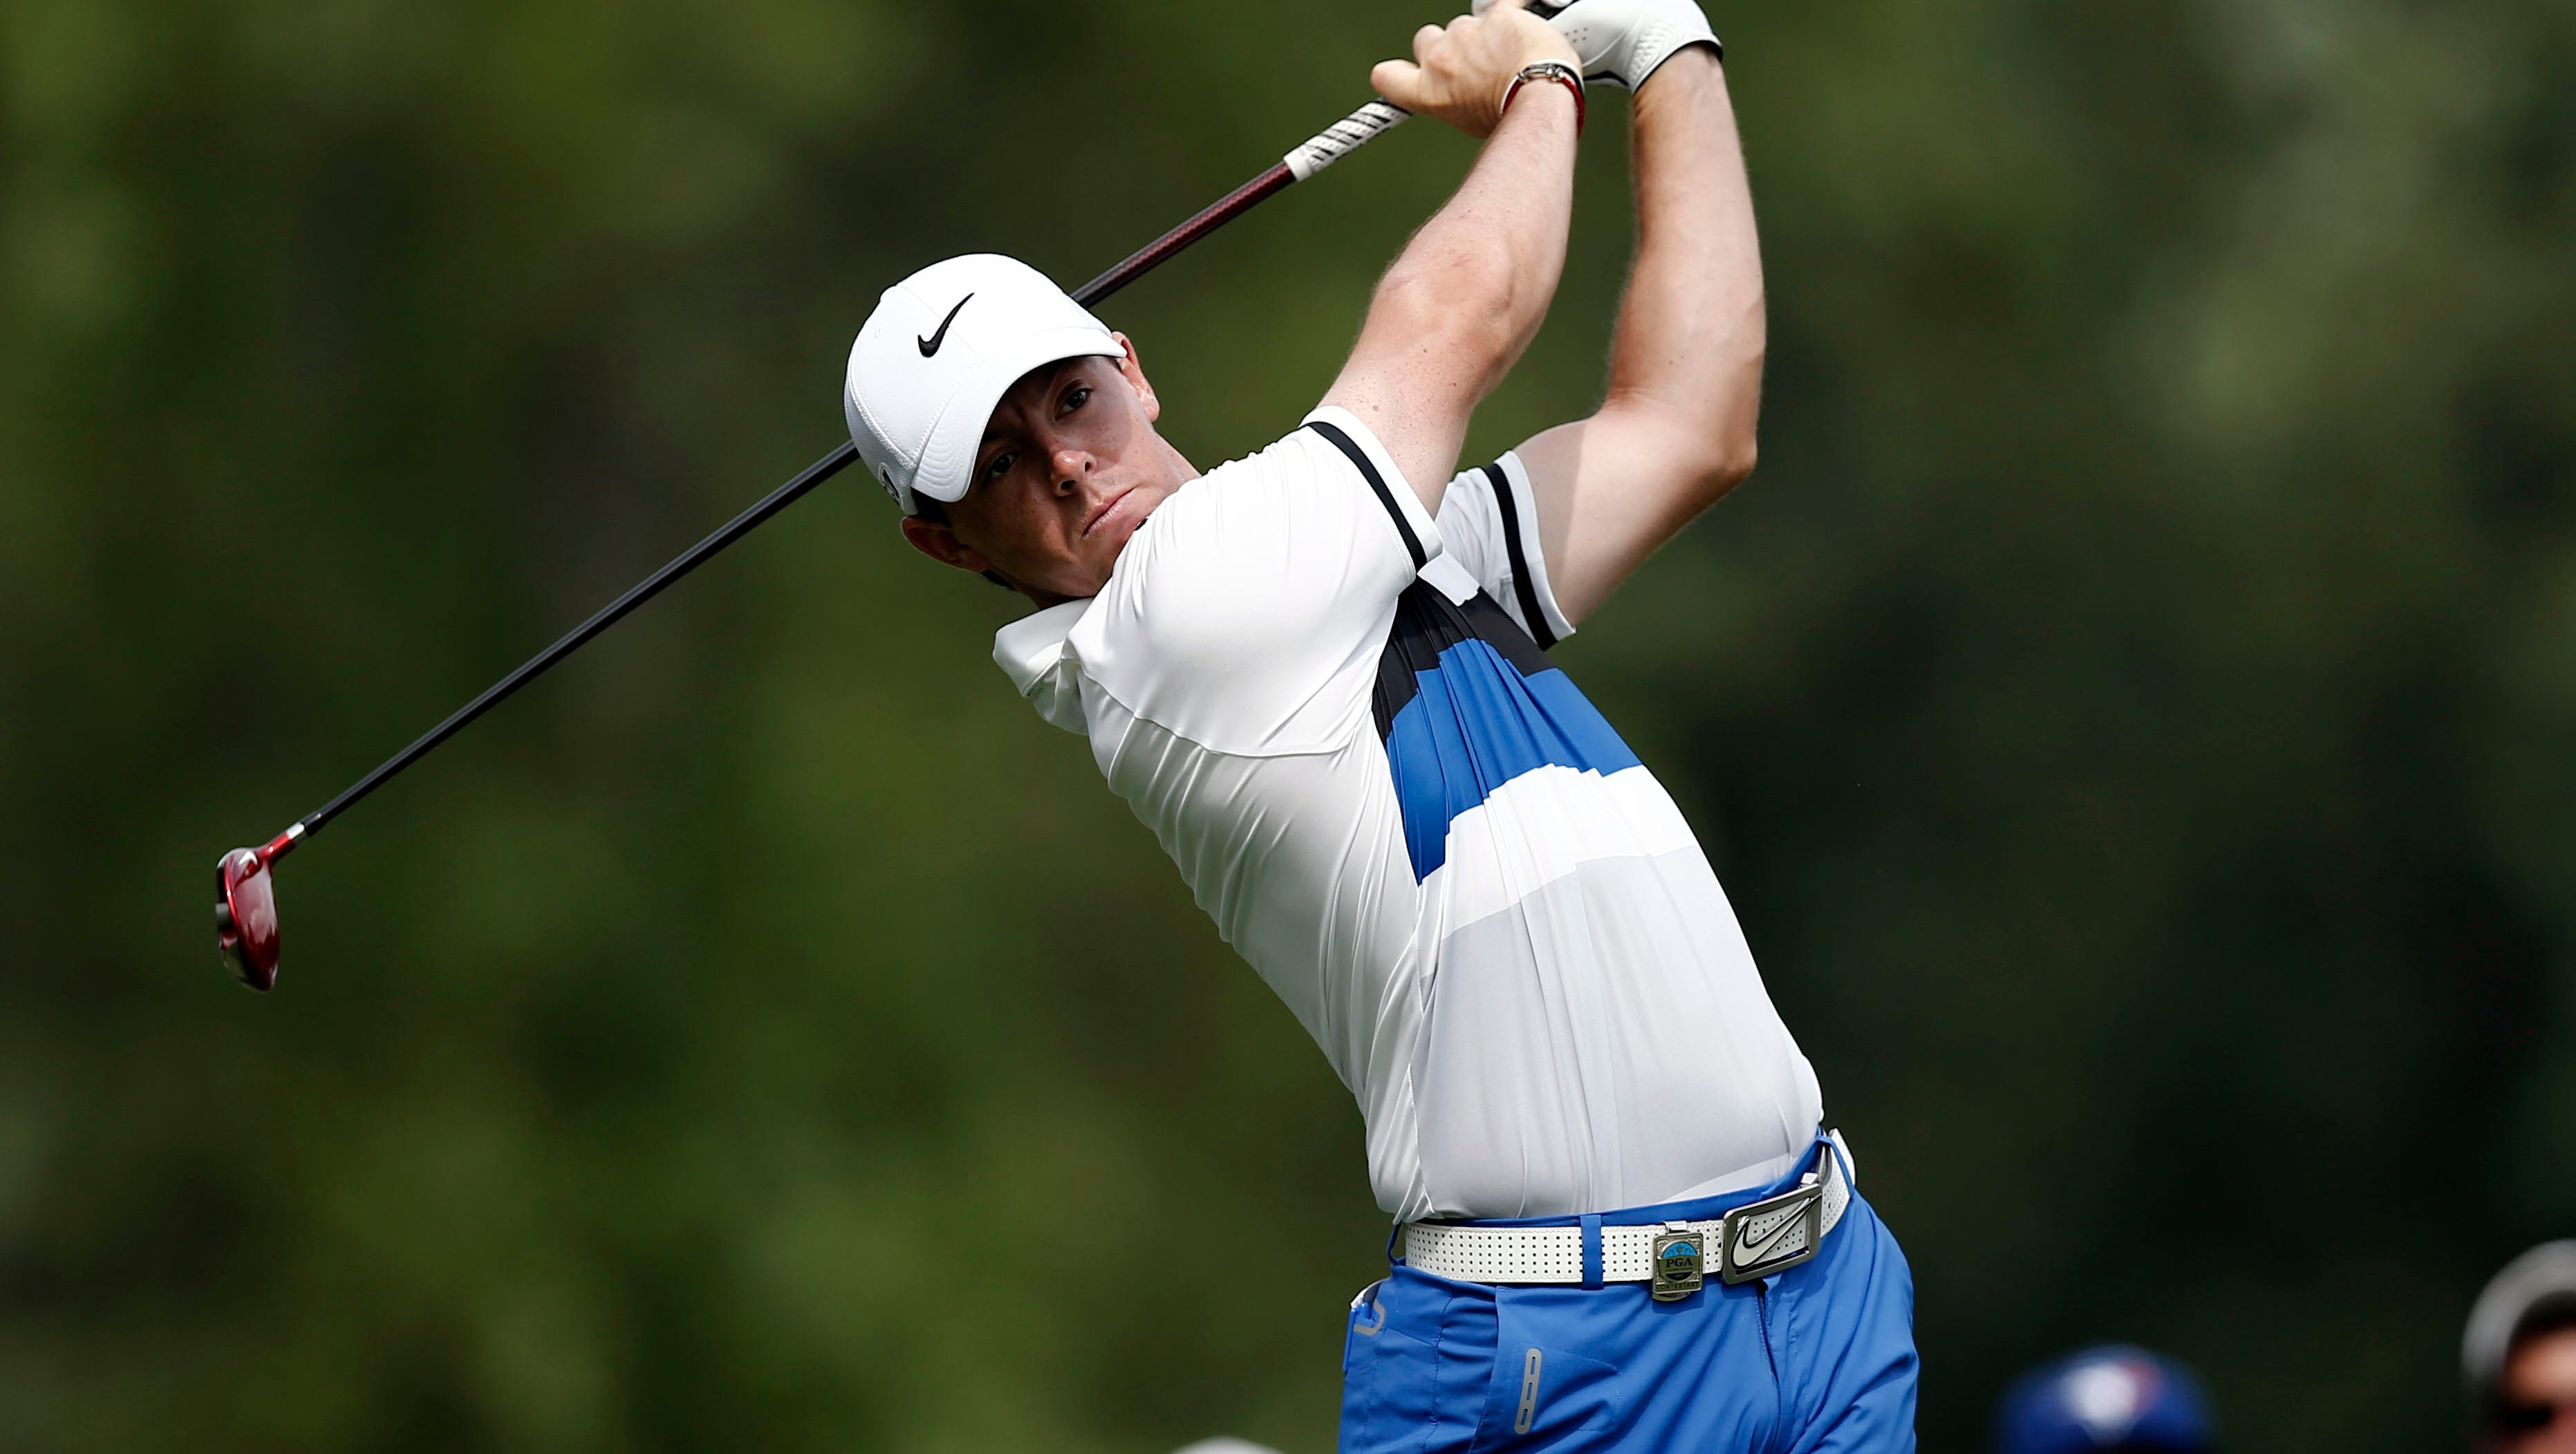 Rory McIlroy tees off on the 9th tee during the first round of the 95th PGA Championship at Oak Hill Country Club.